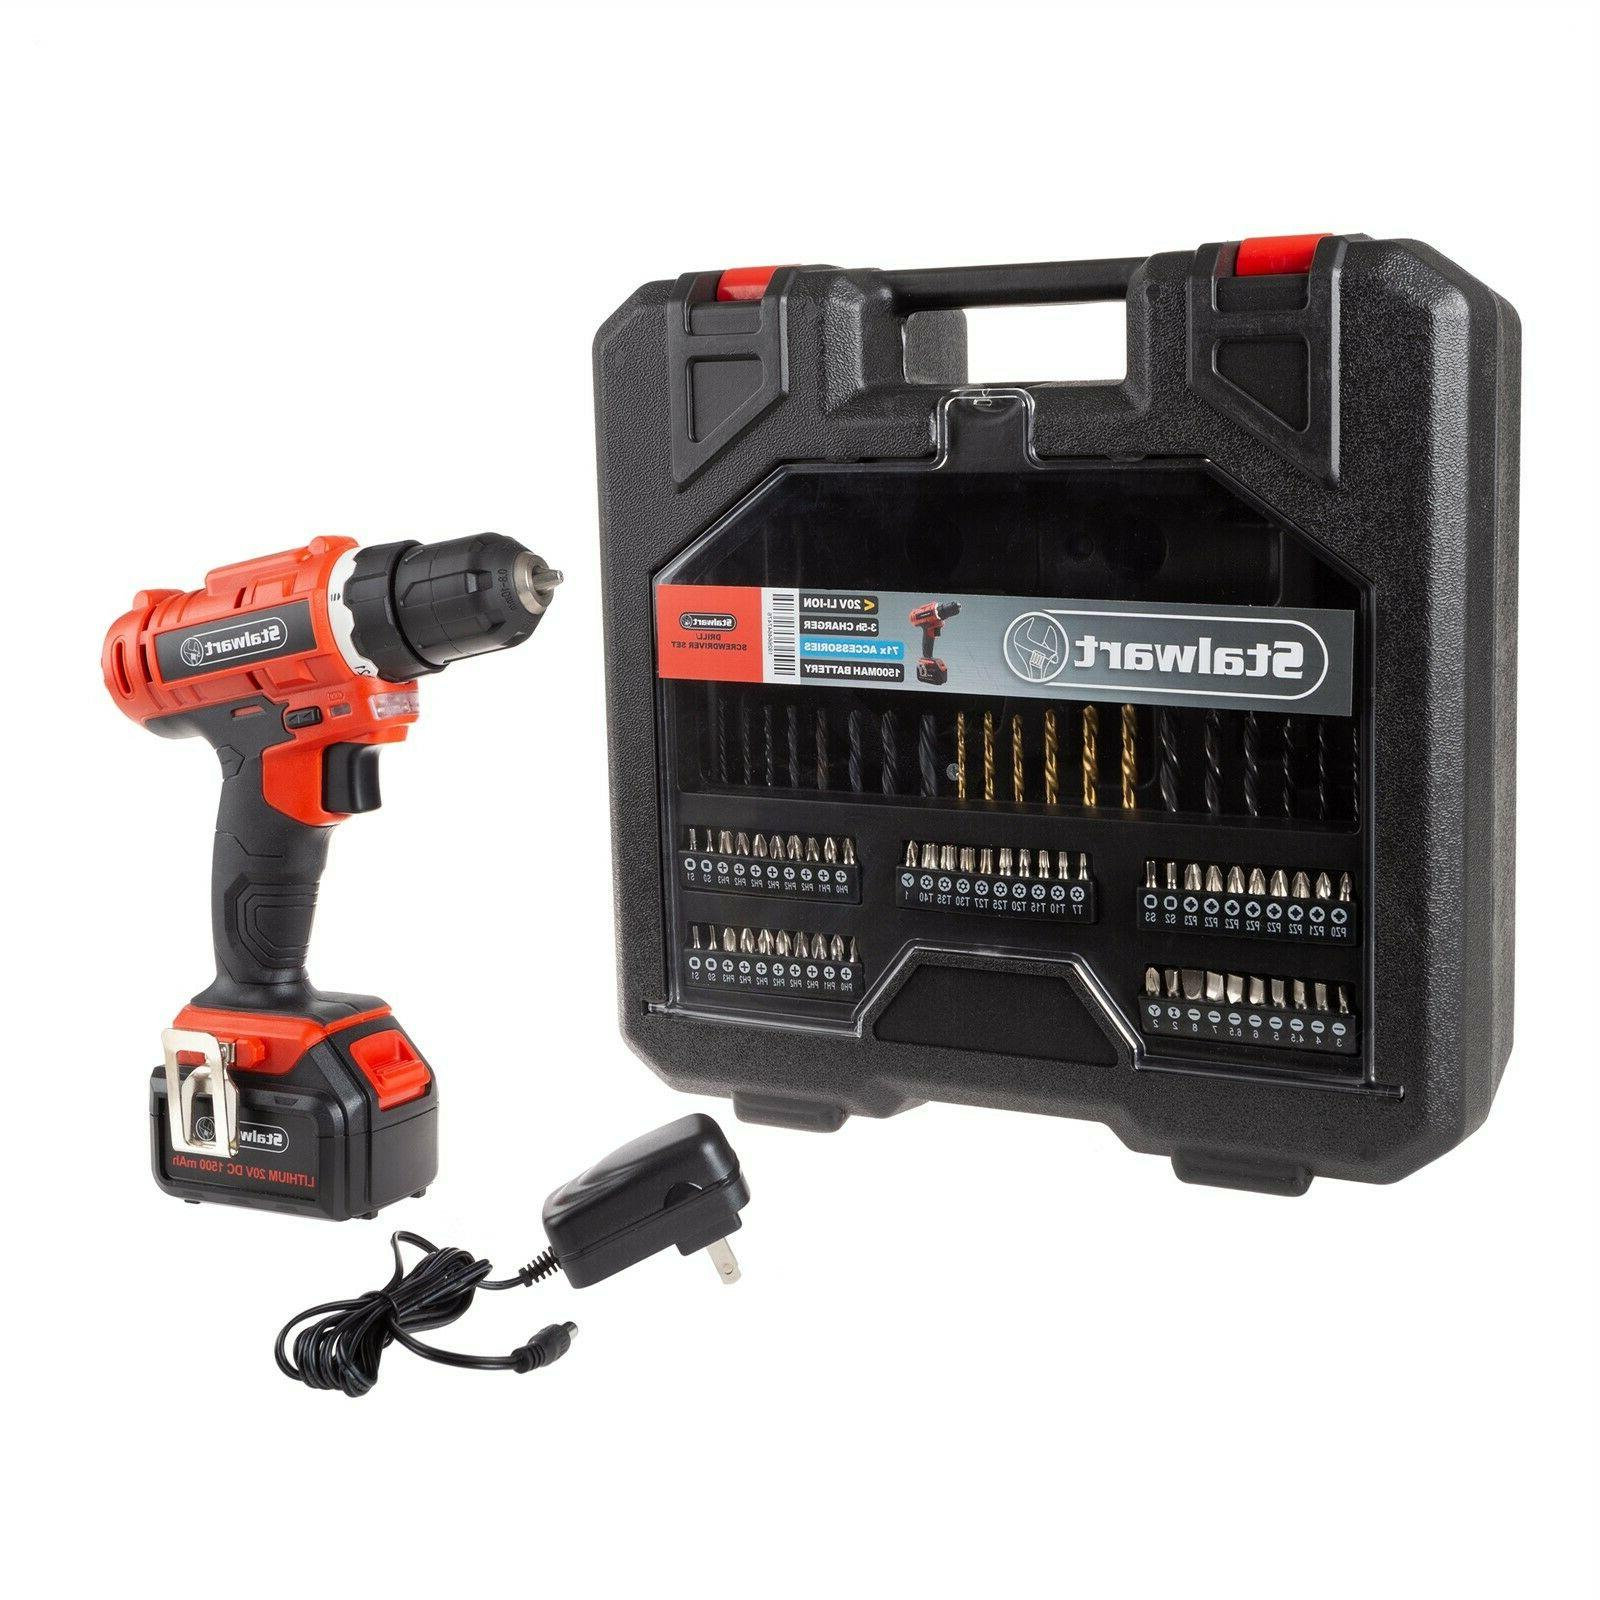 professional 20v cordless drill kit with assorted